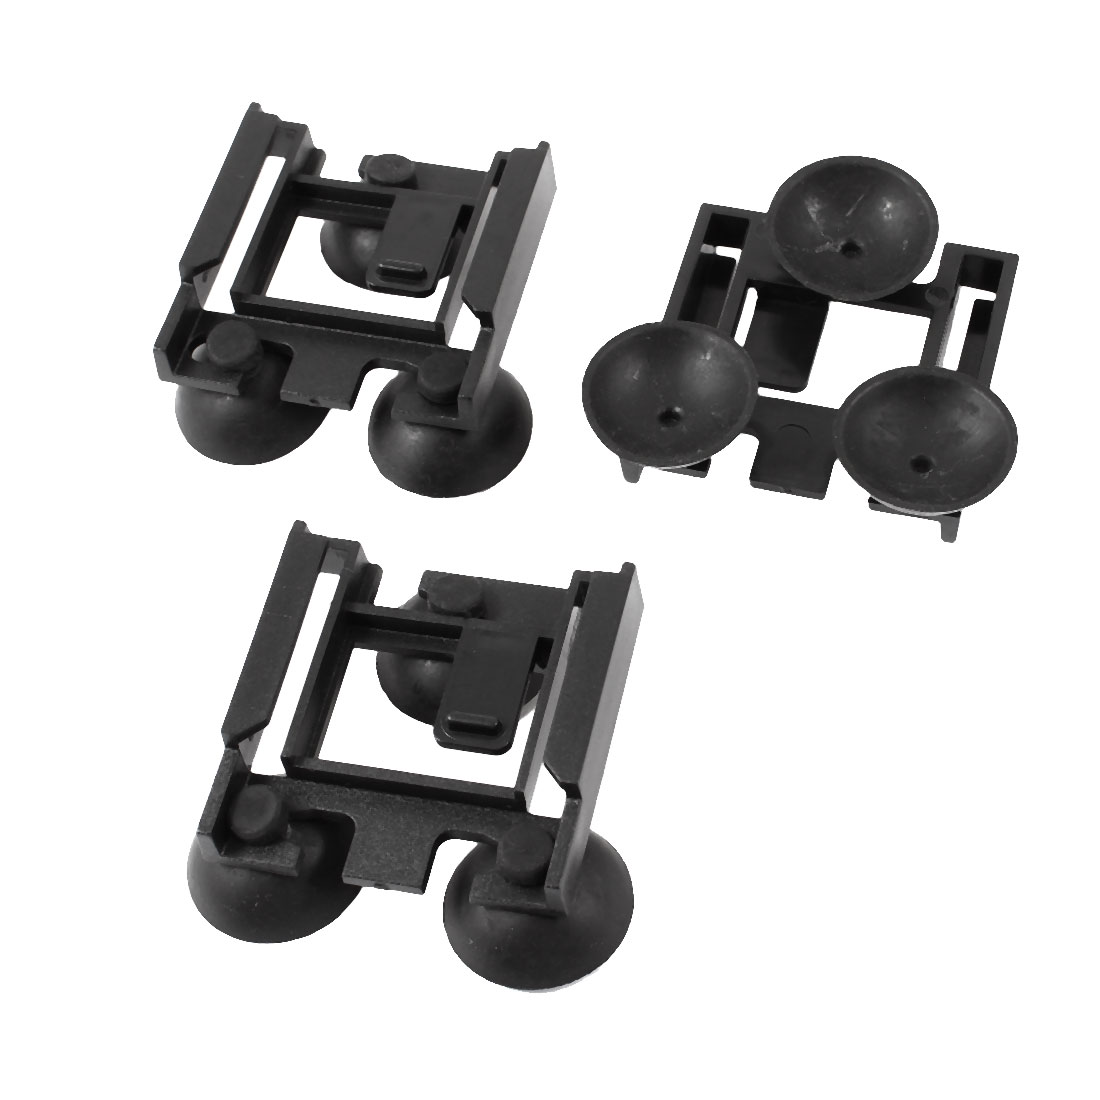 Black Sauqre Bracket Fish Tank Aquarium Internal Filter Suction Cup 3 Pcs